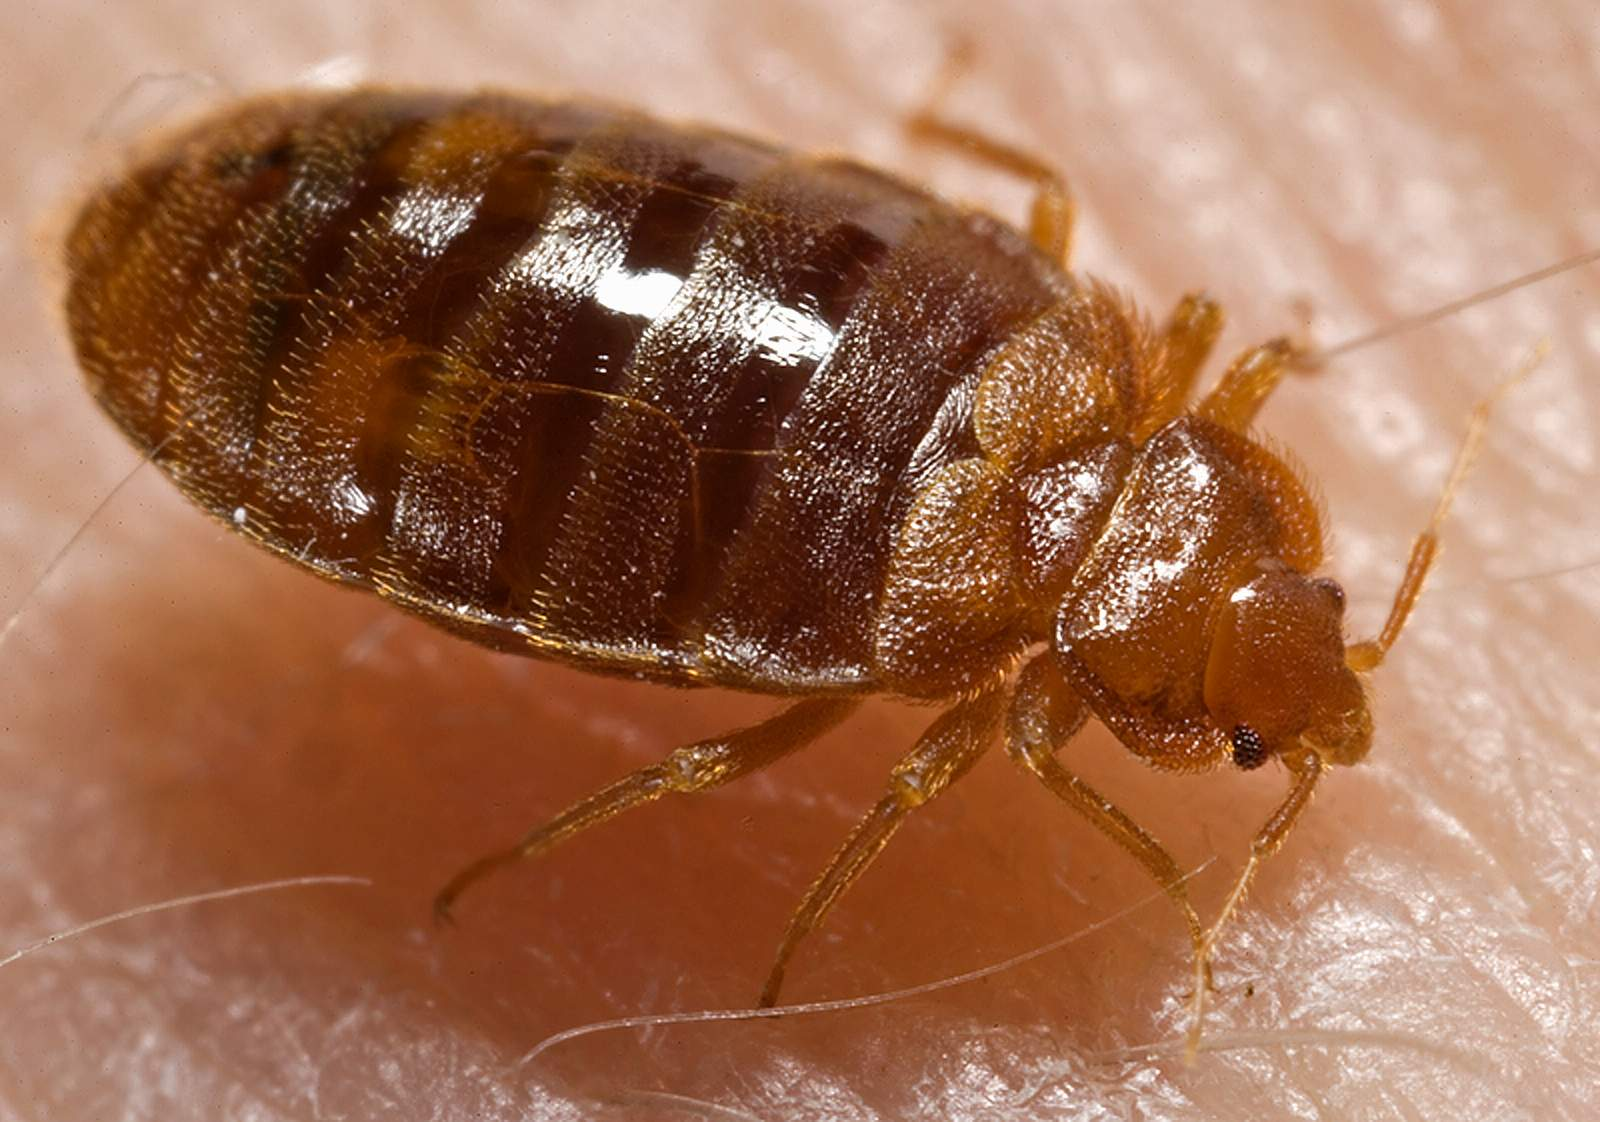 Bedbugs continue to bother some Westfield residents